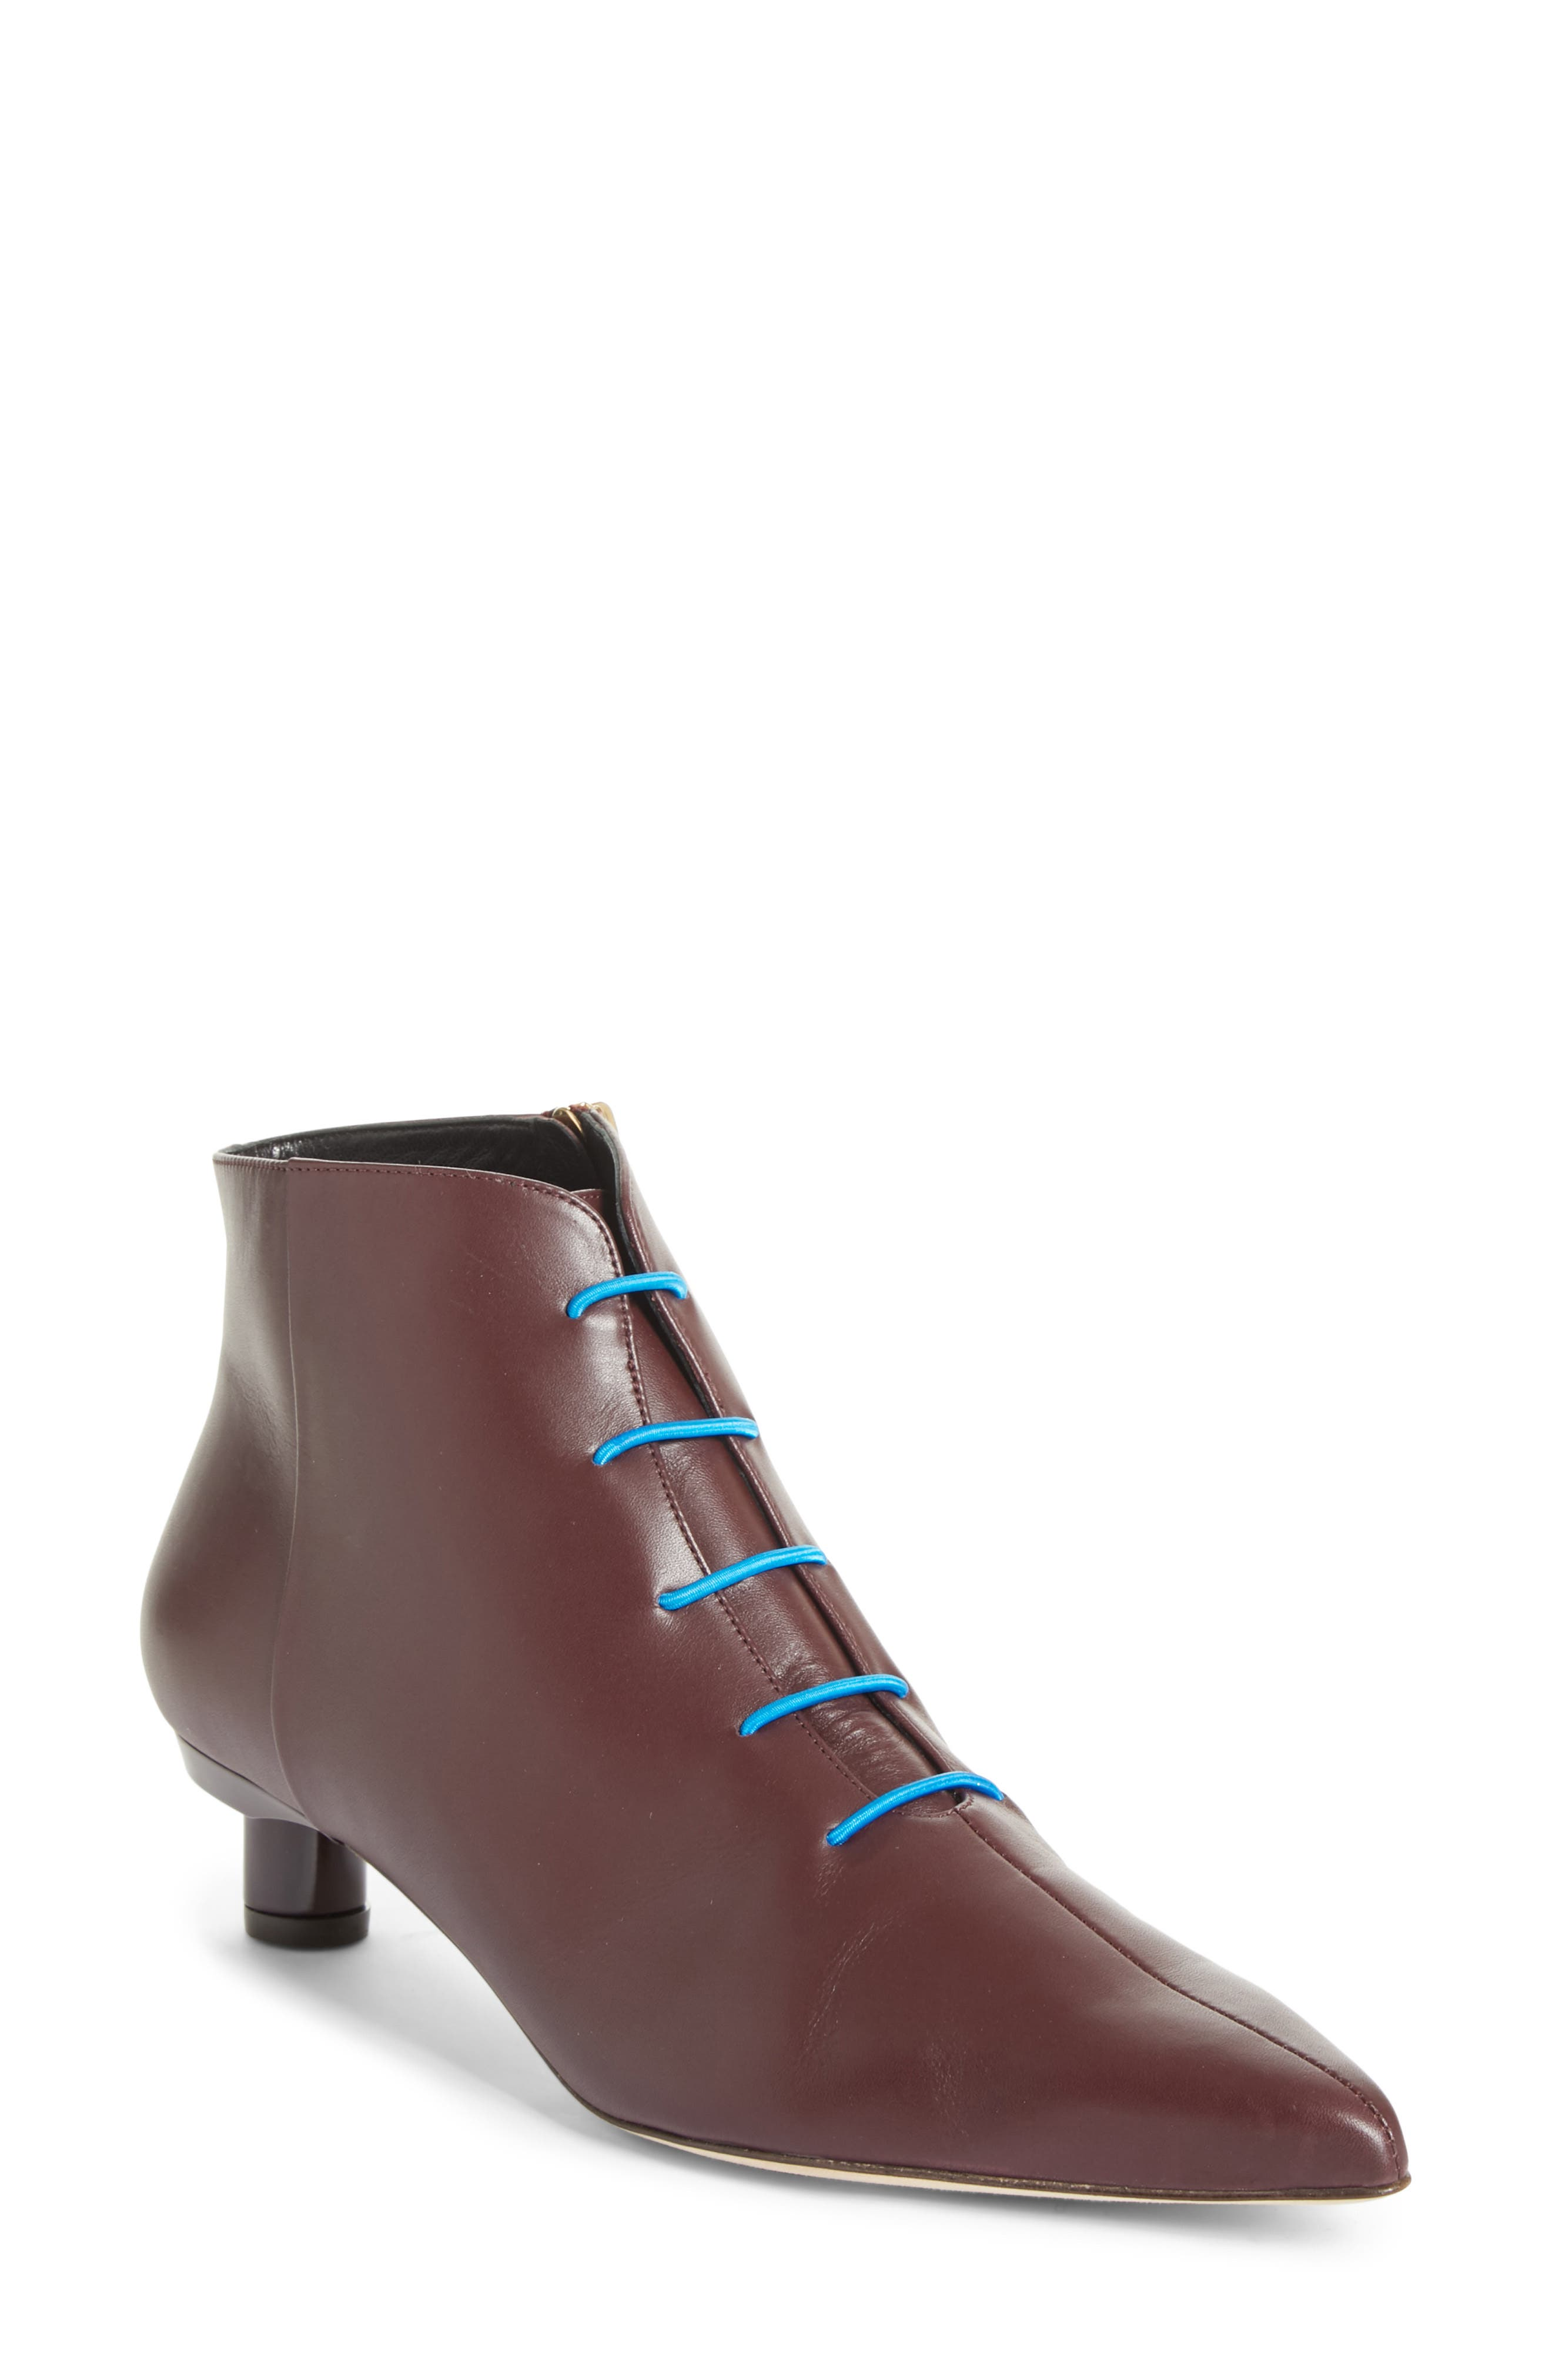 Asher Bootie,                             Main thumbnail 1, color,                             930